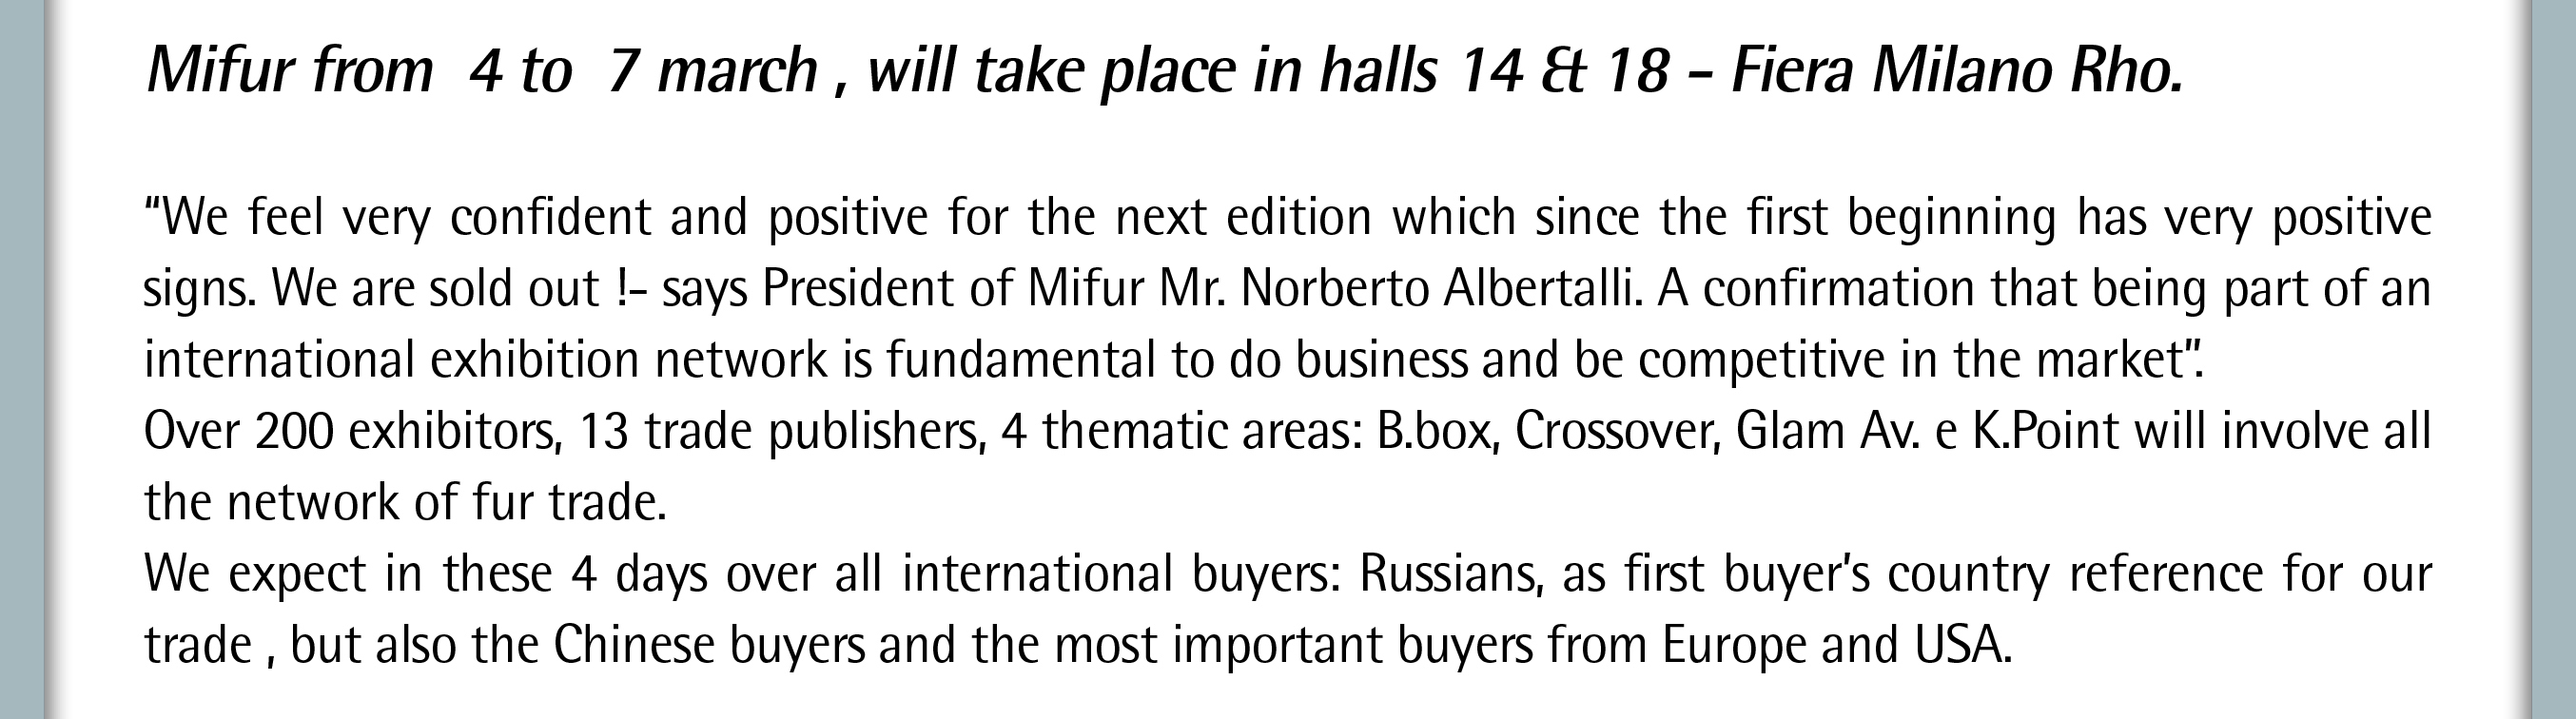 Mifur from 4 to 7 march , will take place in halls 14 & 18 -Fiera Milano Rho.  �We feel very confident and positive for the next edition which since the first beginning has very positive signs. We are sold out !- says President of Mifur Mr. Norberto Albertalli. A confirmation that being part of an international exhibition network is fundamental to do business and be competitive in the market�. Over 200 exhibitors, 13 trade publishers, 4 thematic areas:B.box, Crossover, Glam Av. e K.Pointwill involve all the network of fur trade. We expect in these 4 days over all international buyers: Russians, as first buyer�s country reference for our trade, but also the Chinese buyers and the most important buyers from Europe and USA.